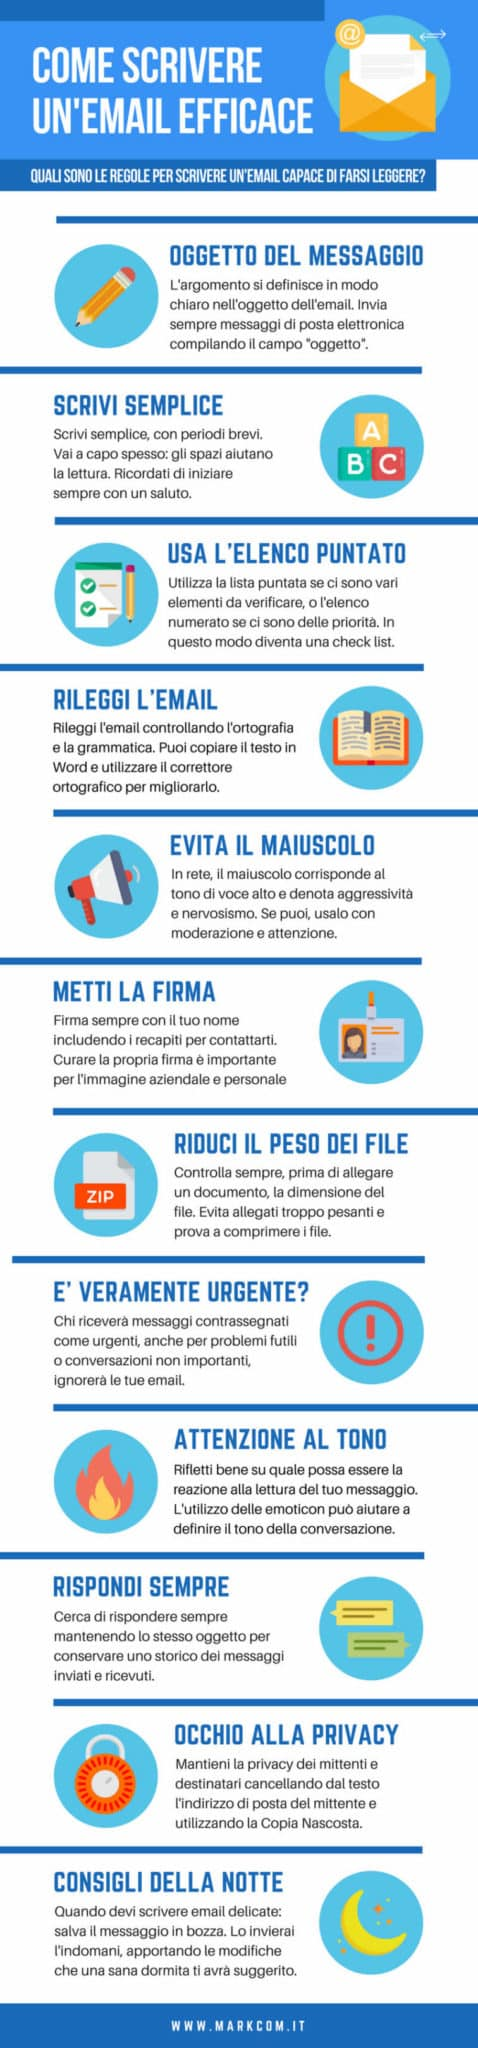 [Infografica] Come scrivere un'email efficace in 12 mosse